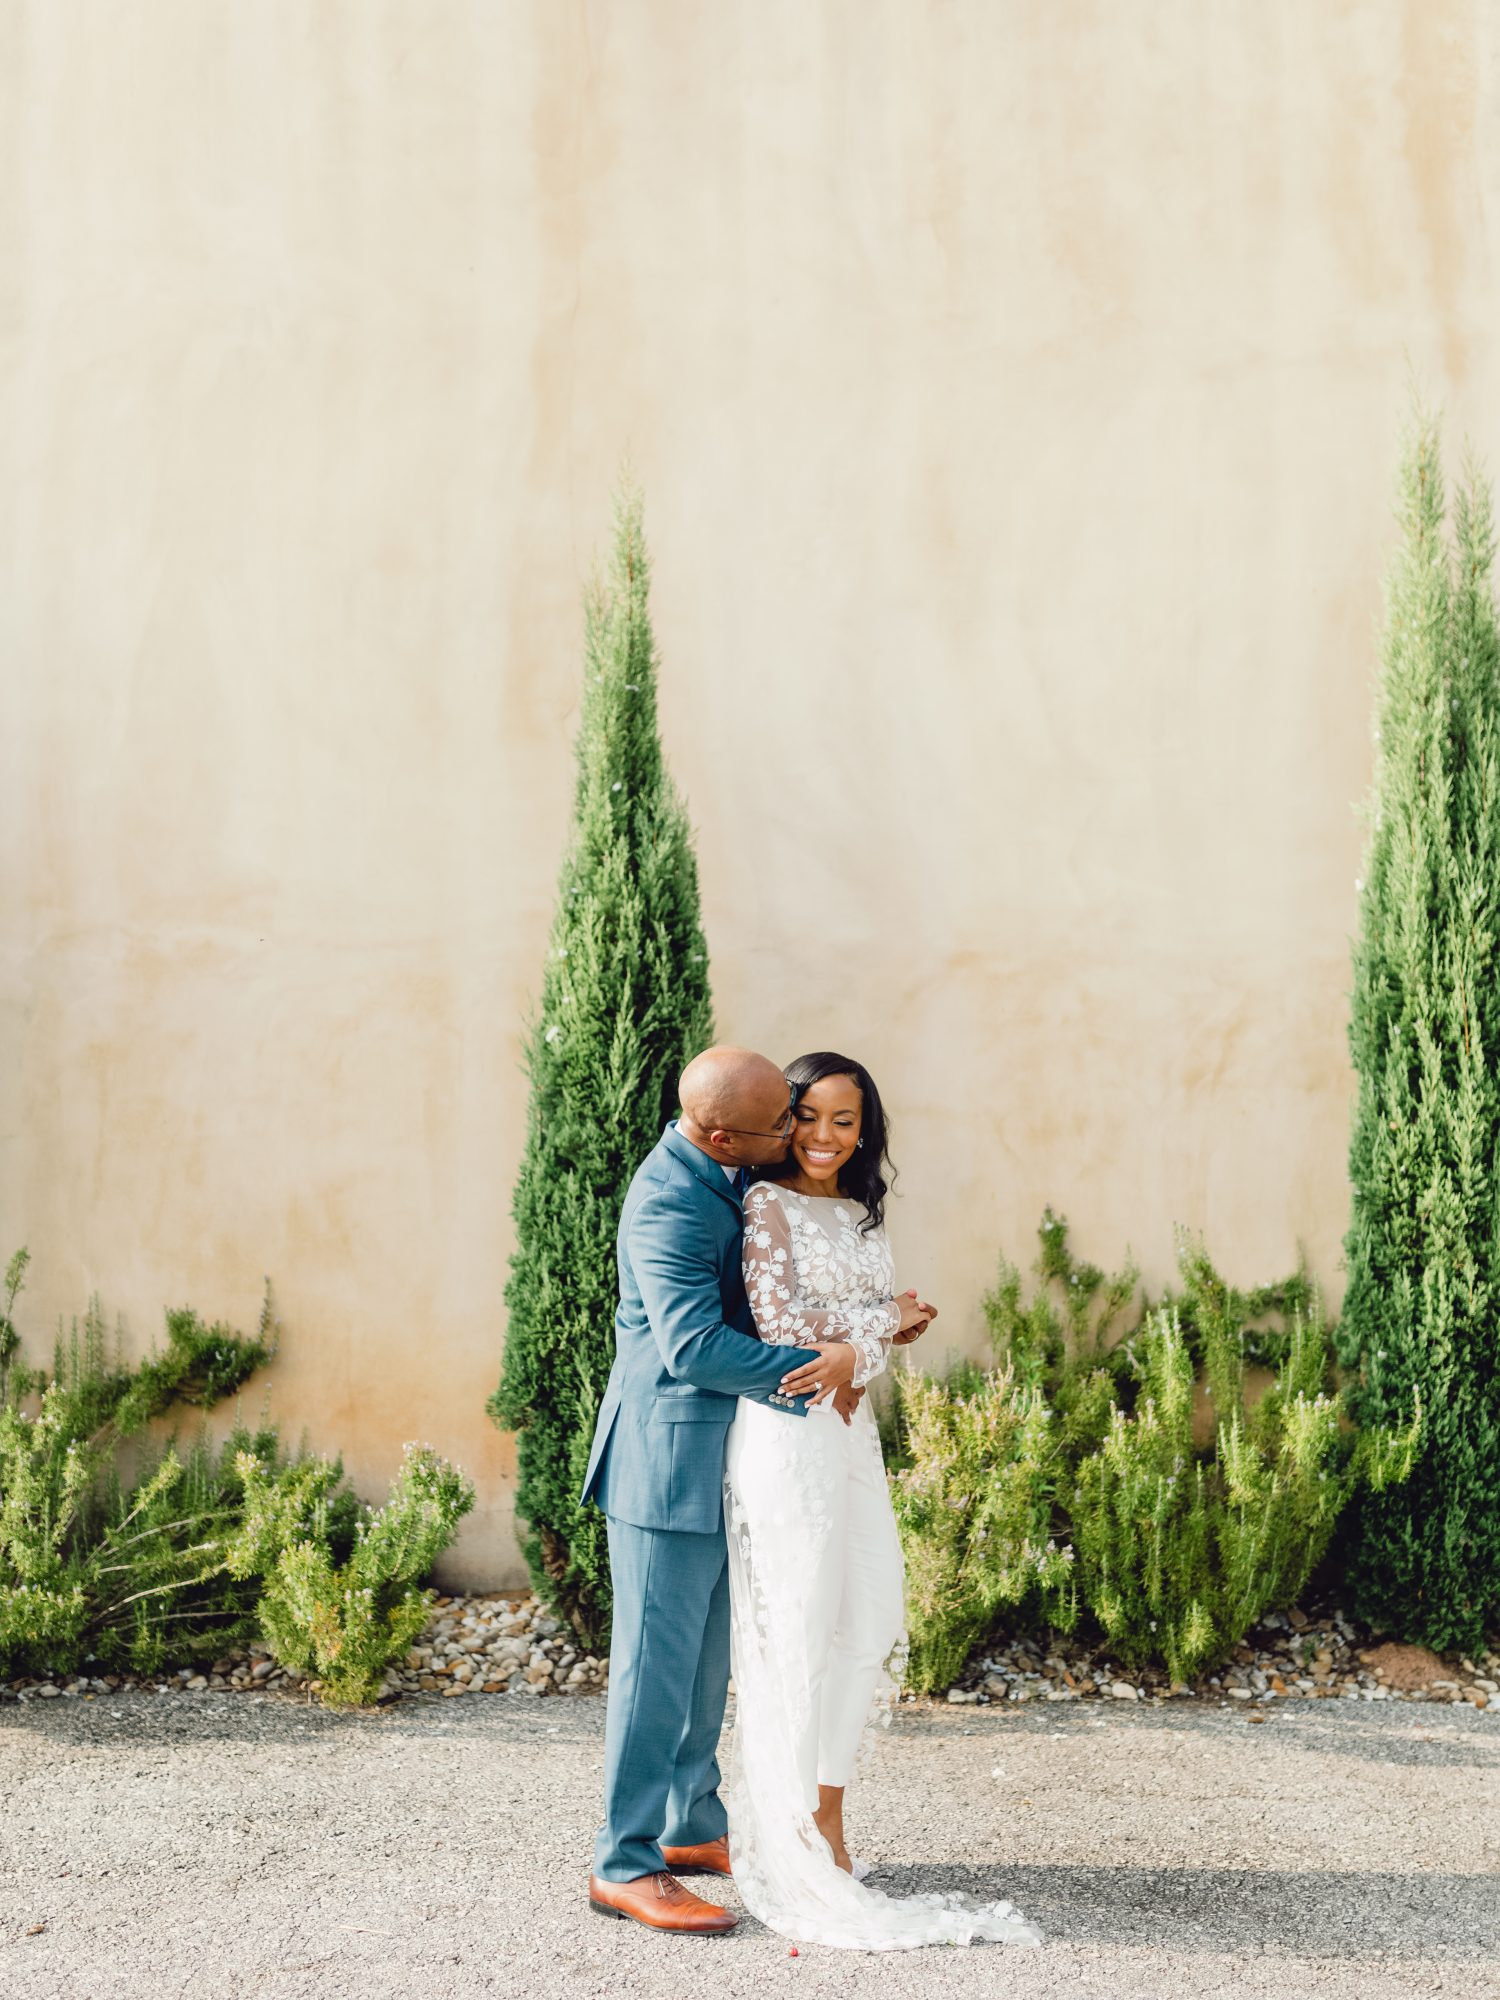 cayla david wedding couple smile and hug surrounded by shrubs and greenery